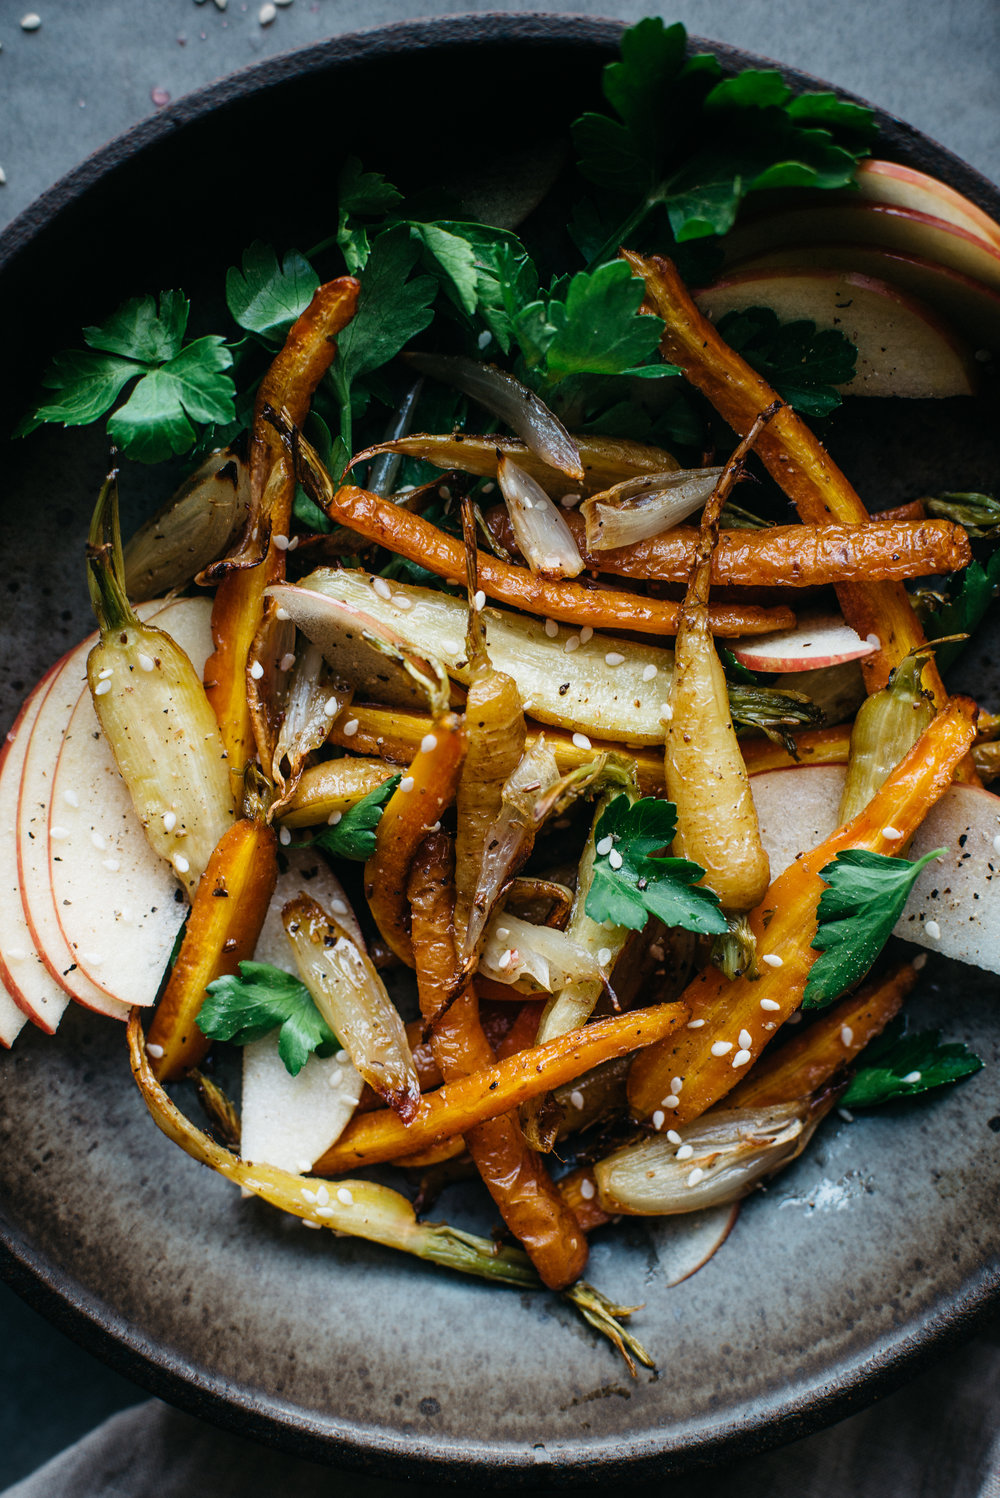 fennel roasted carrot salad.jpg